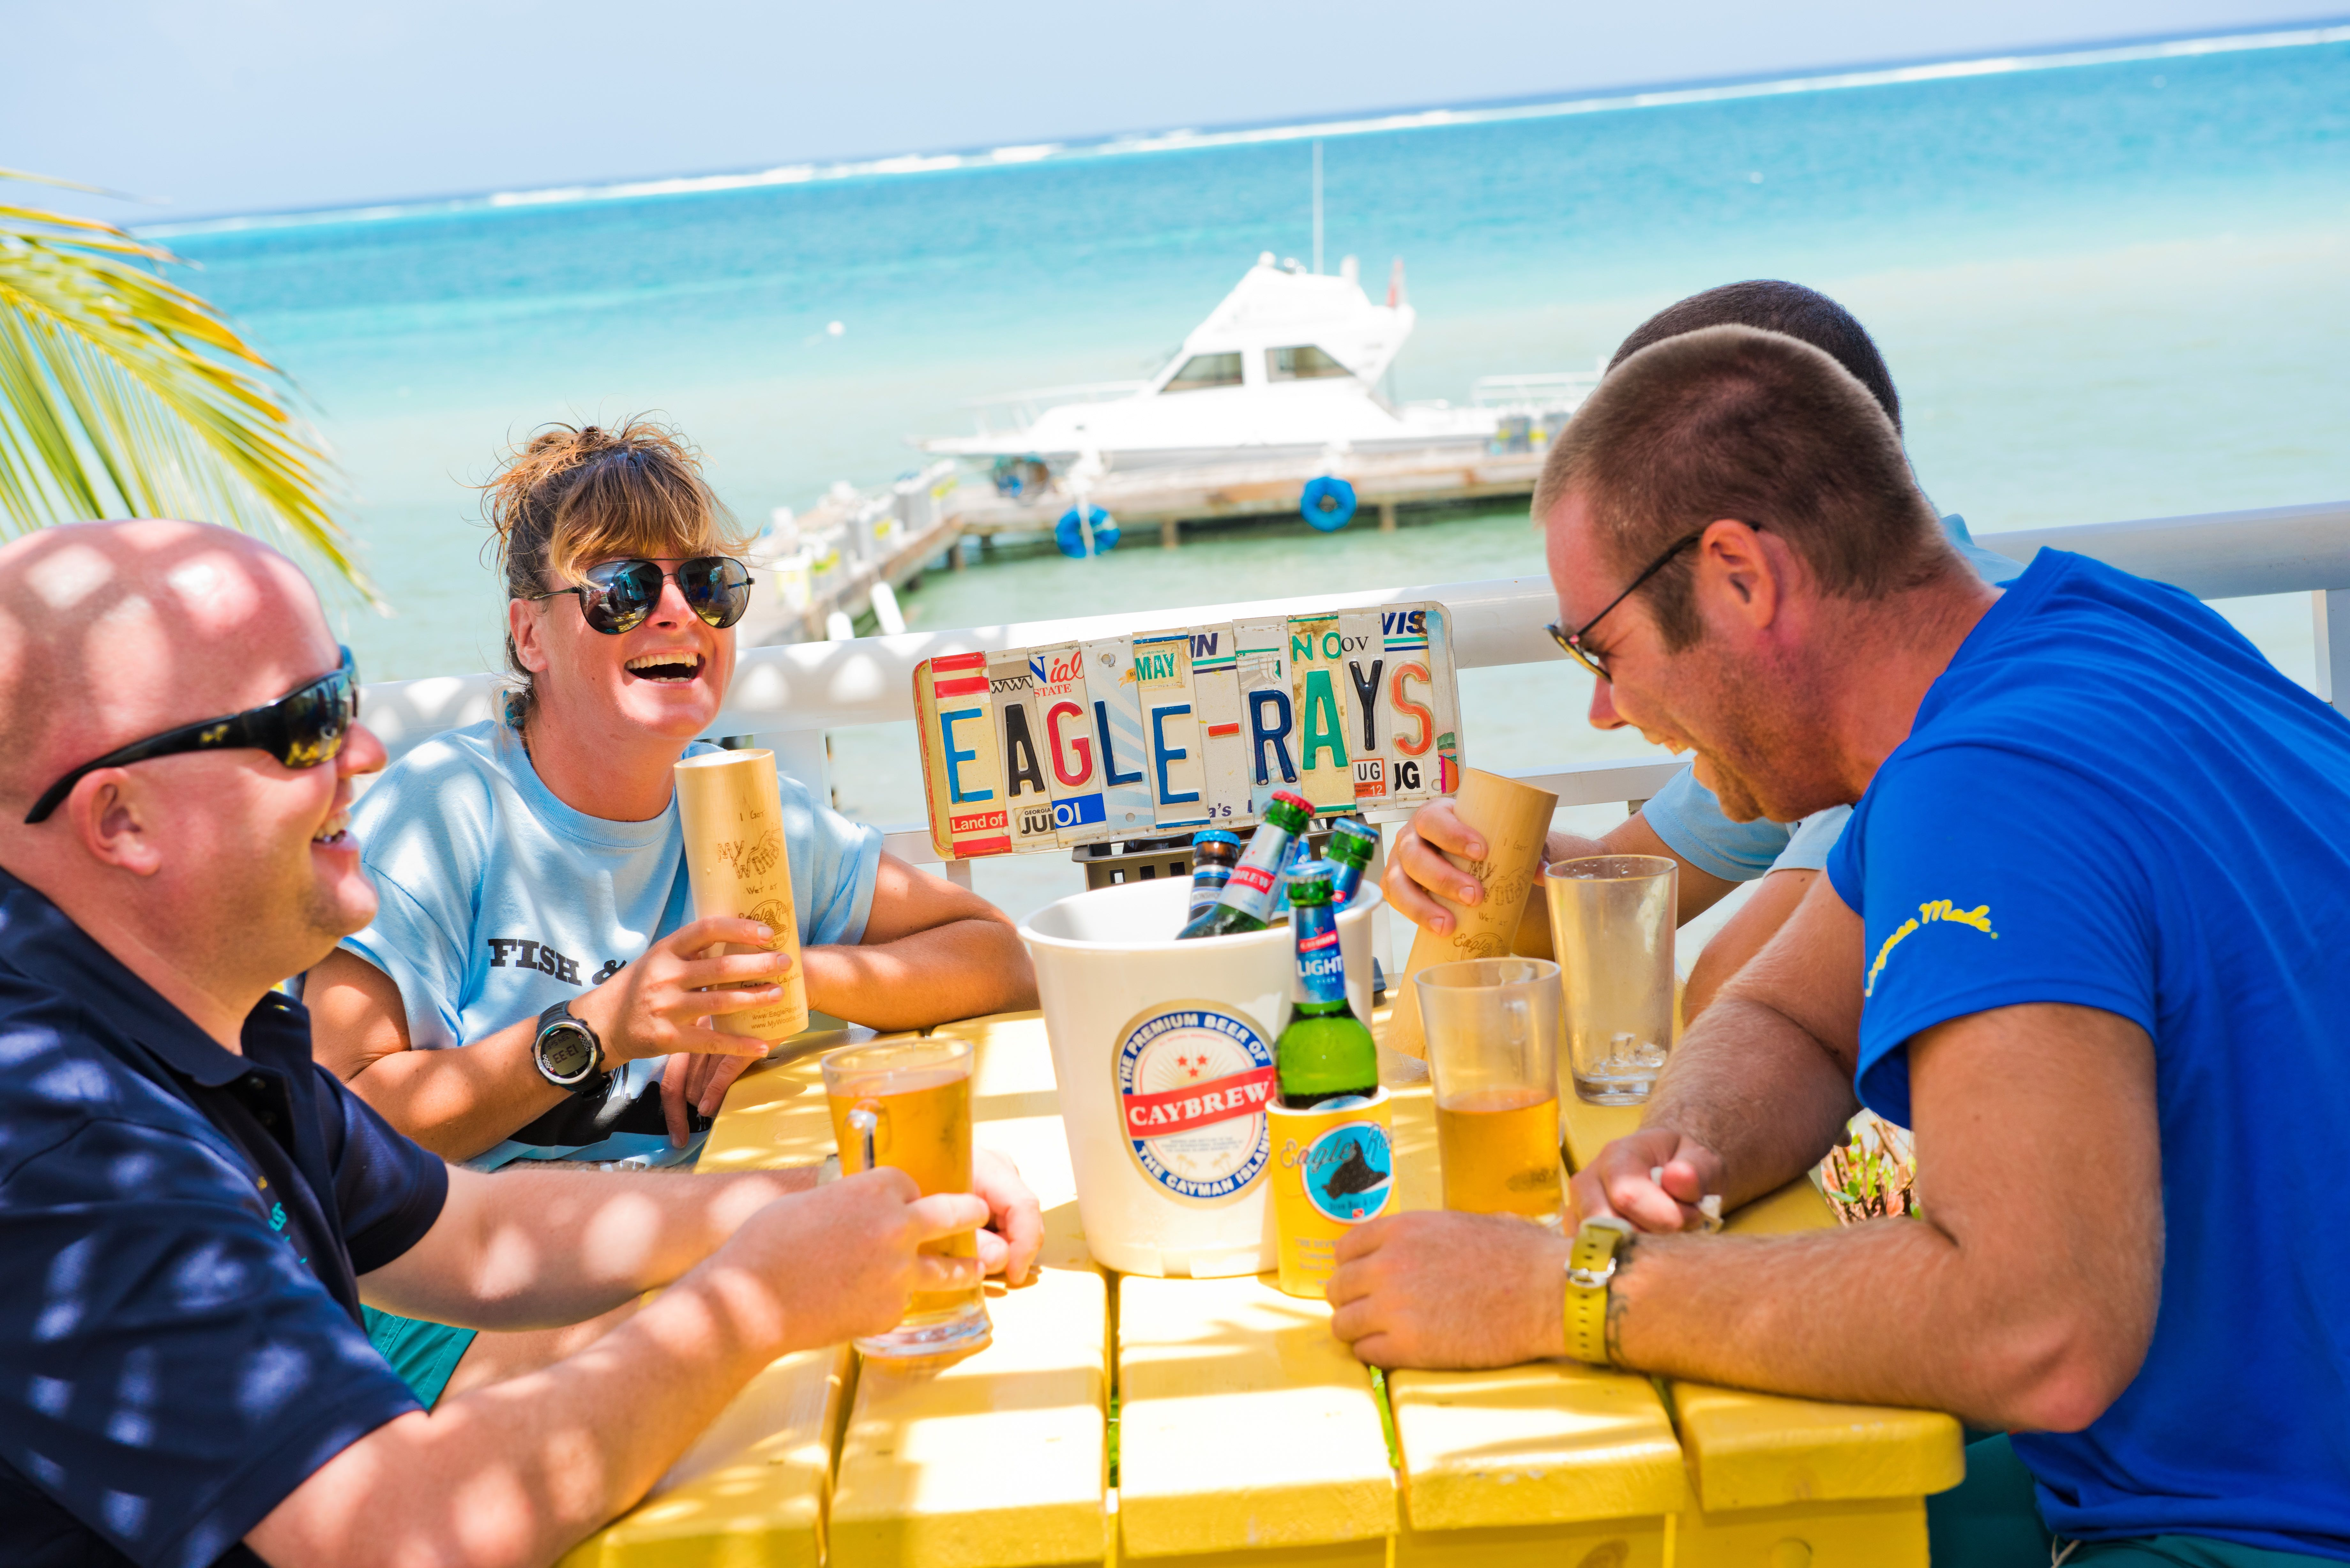 People laughing at Eagle Rays Cayman